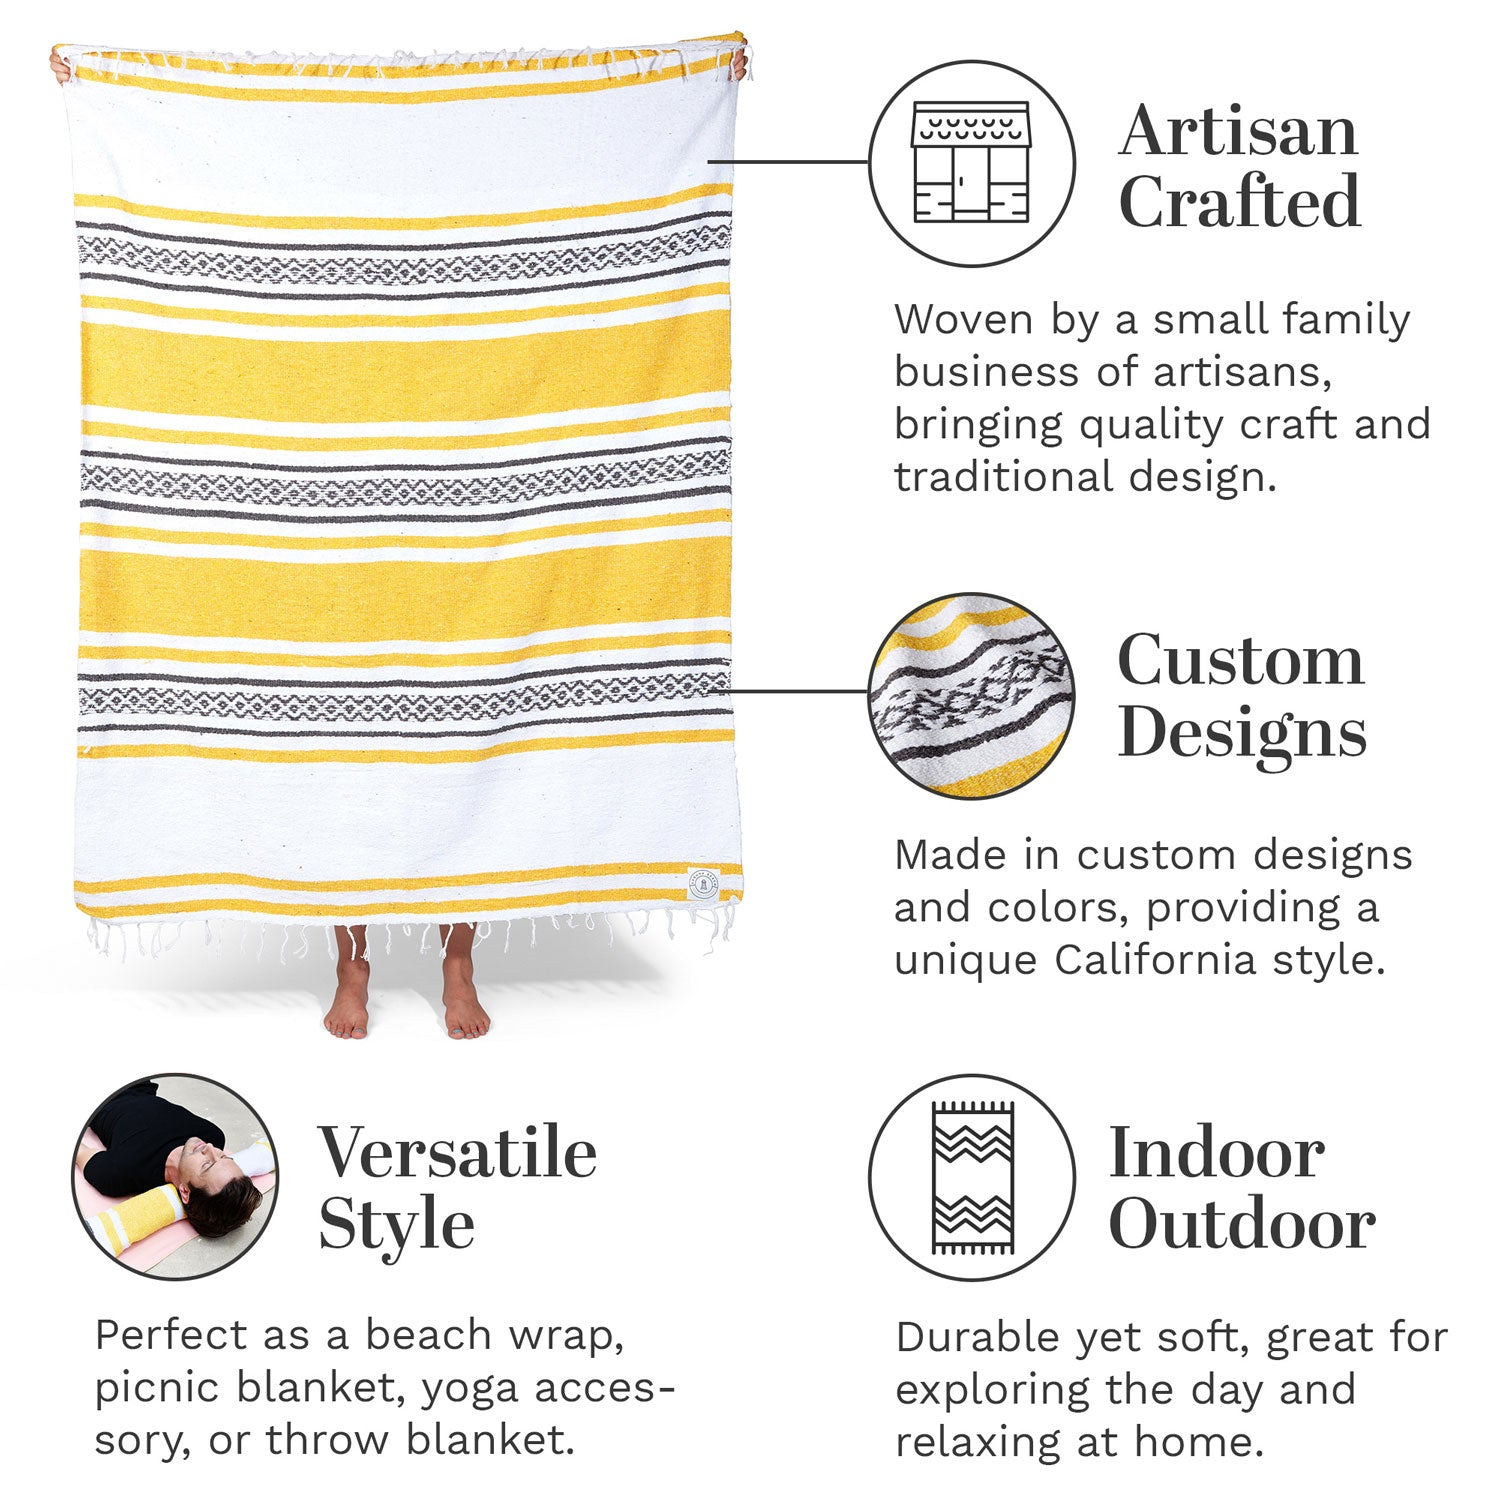 Infographic of our Yellow, white, and charcoal Mexican blanket highlighting its versatile style and artisan craftsmanship.